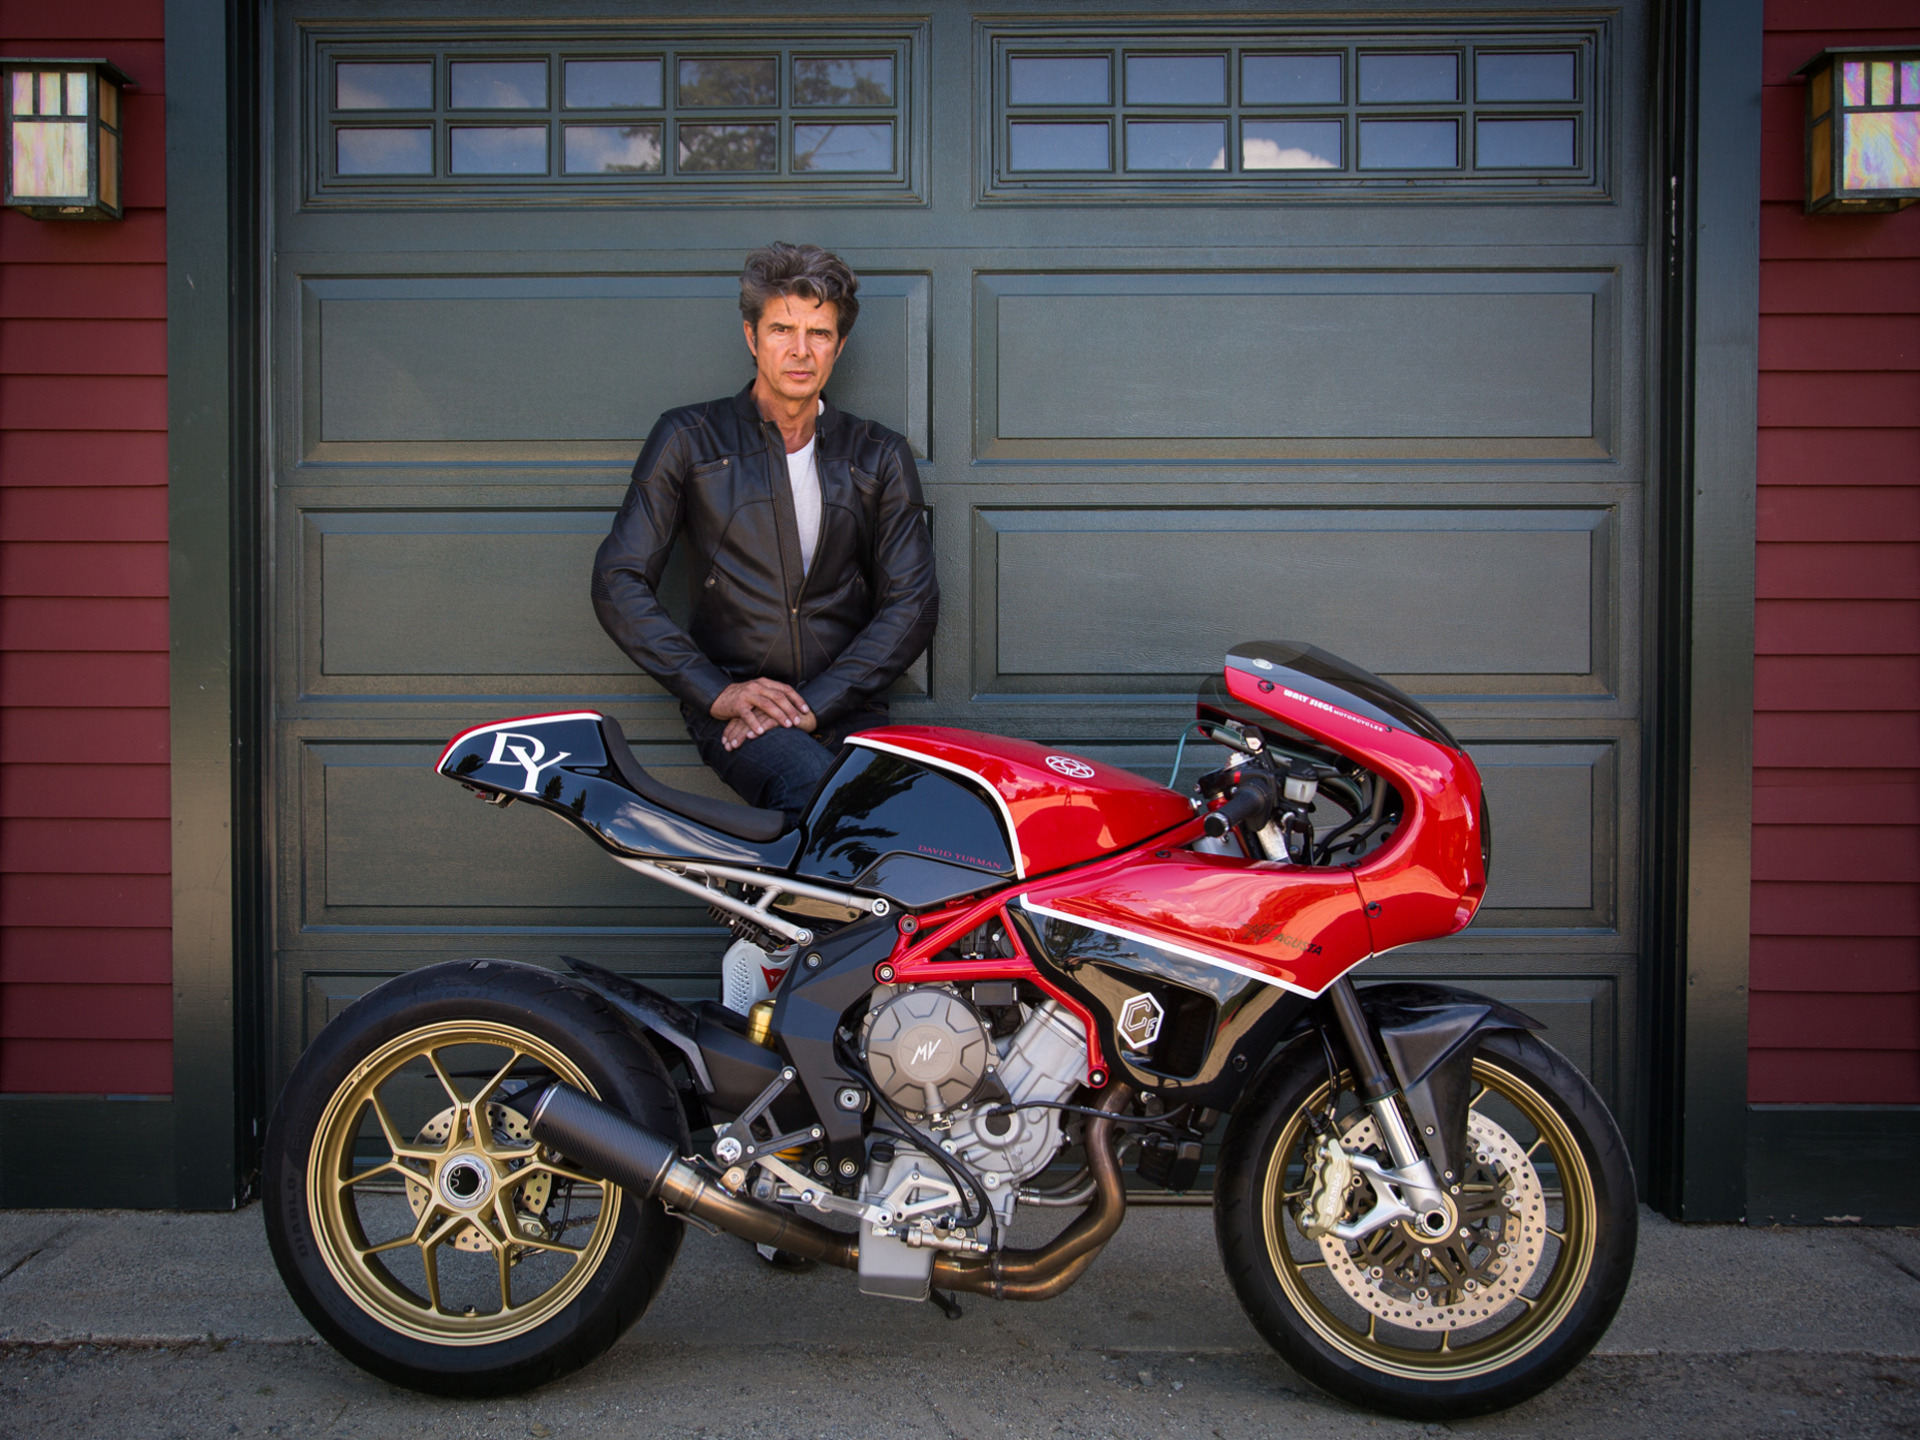 The Motorcycle Portraits